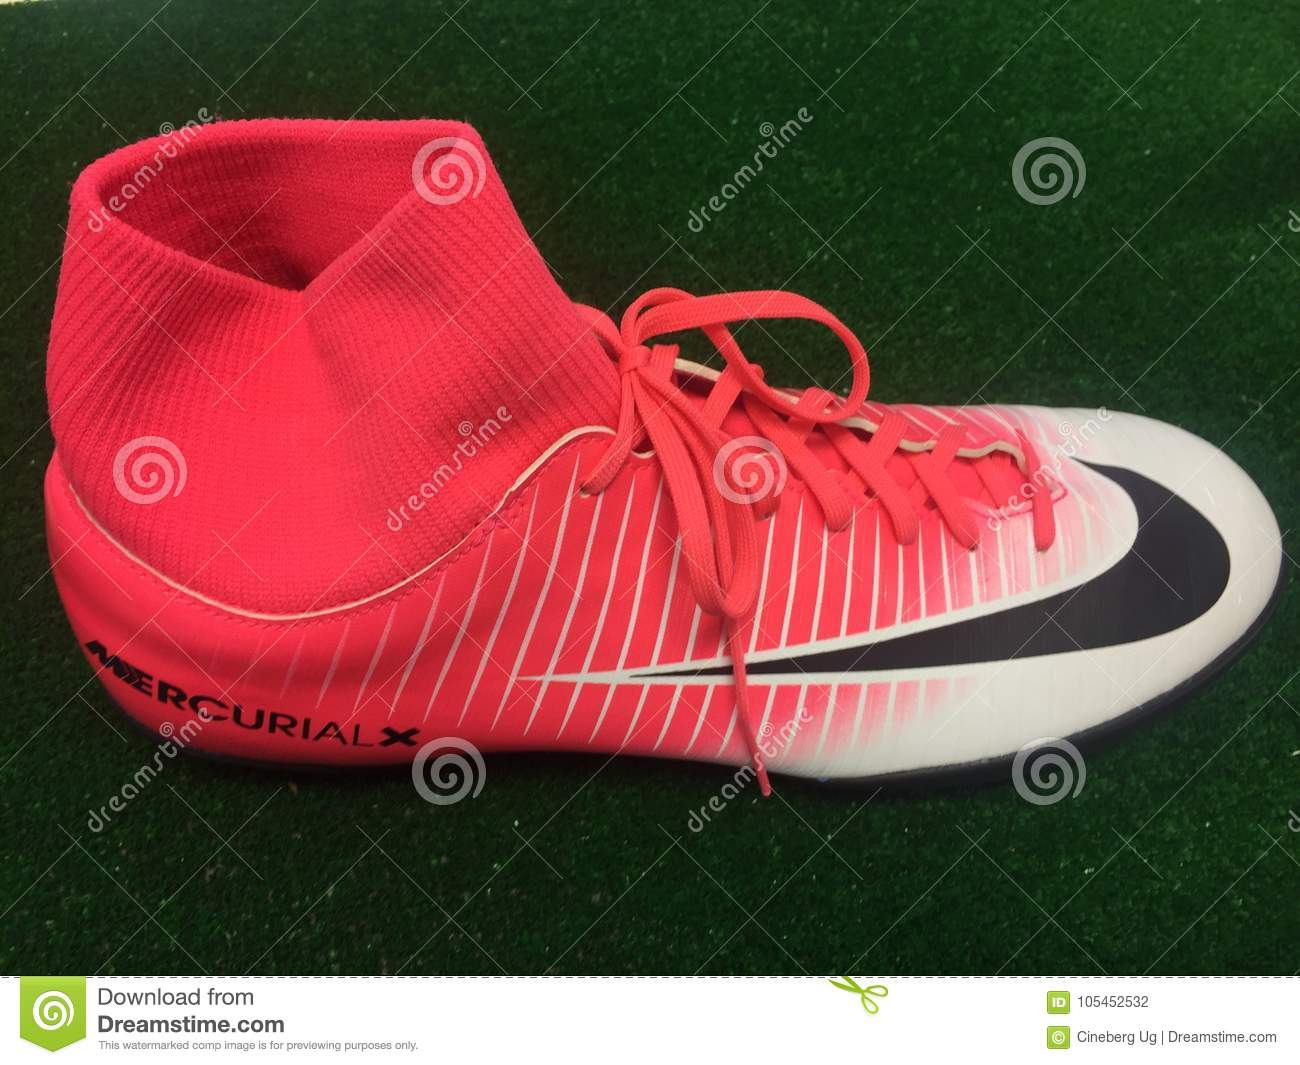 f8279f561e9 Nike Football Shoes For Sale Editorial Photography - Image of label ...